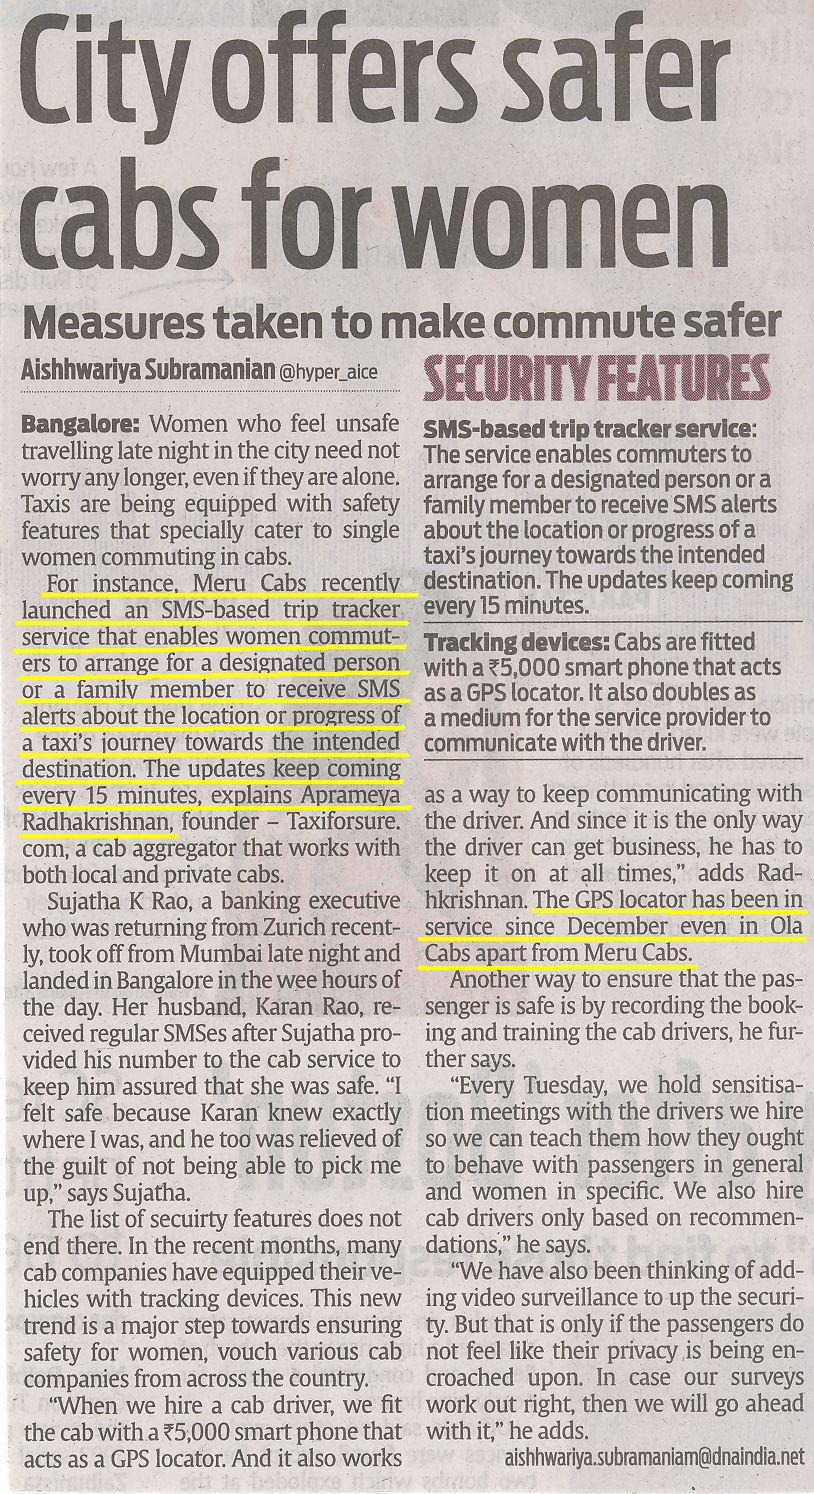 DNA Bangalore - City offers safer cabs for women